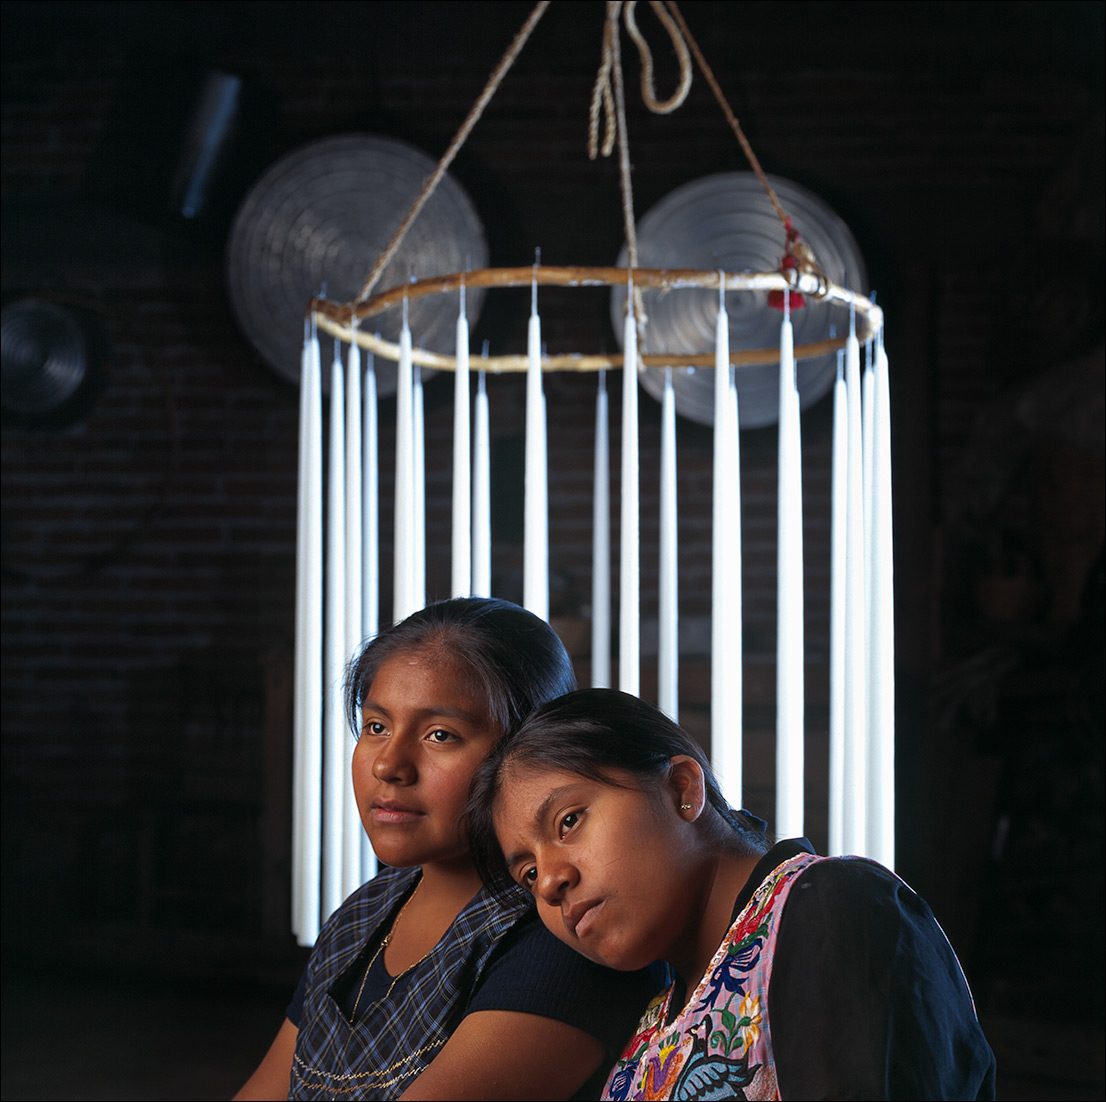 candle-makers, Zapotec Women of Oaxaca